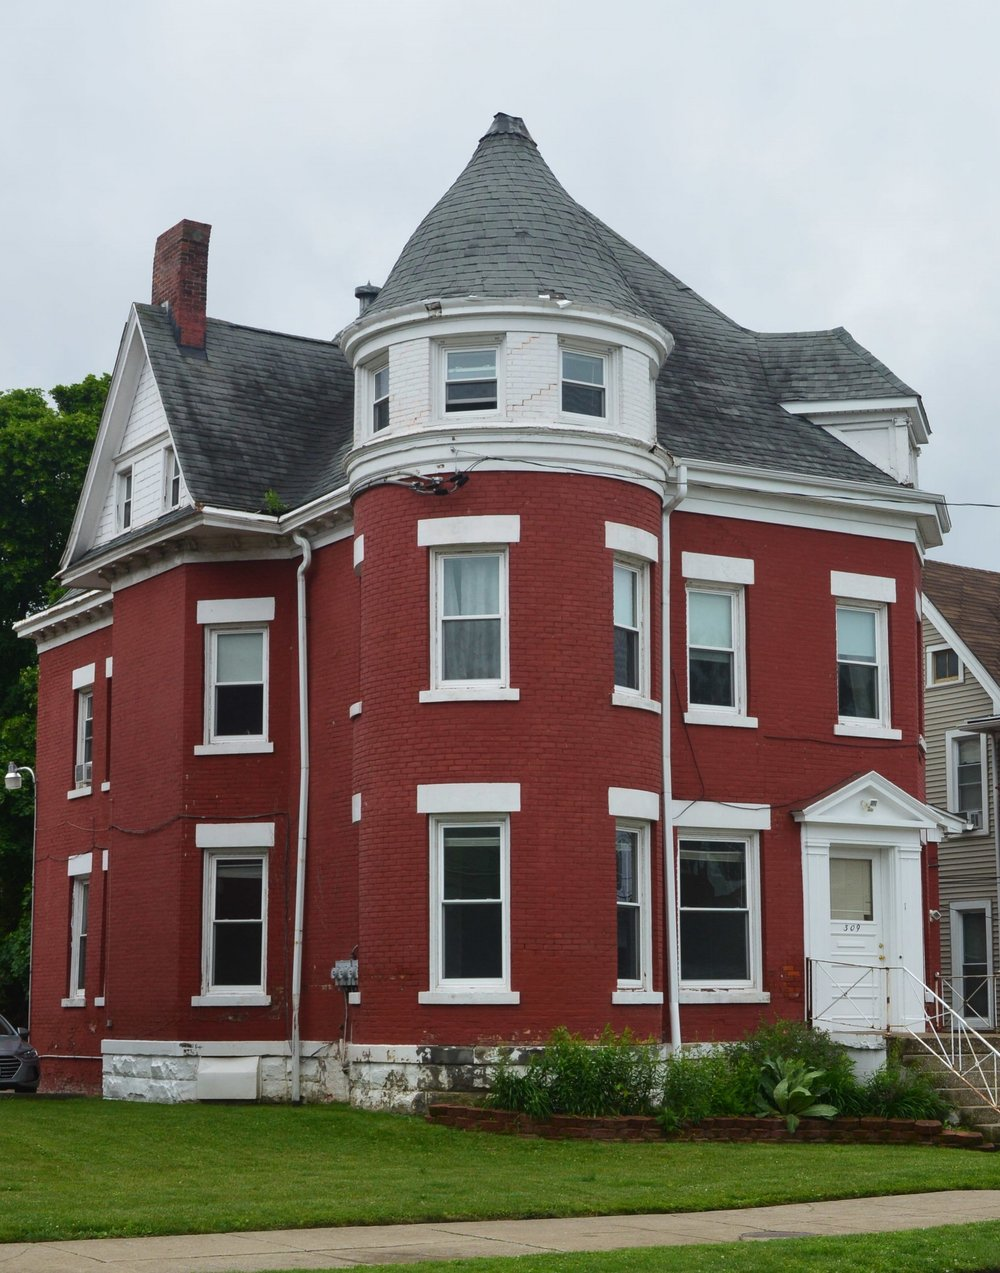 Anneke Arms    - 309 West 8th St. Erie, Pa 16502. This property is located in the Presta District. This well maintained home is located one block from Gannon University and provides a comfortable atmosphere. This property is ideal for any student who desires integral living in an off campus environment.